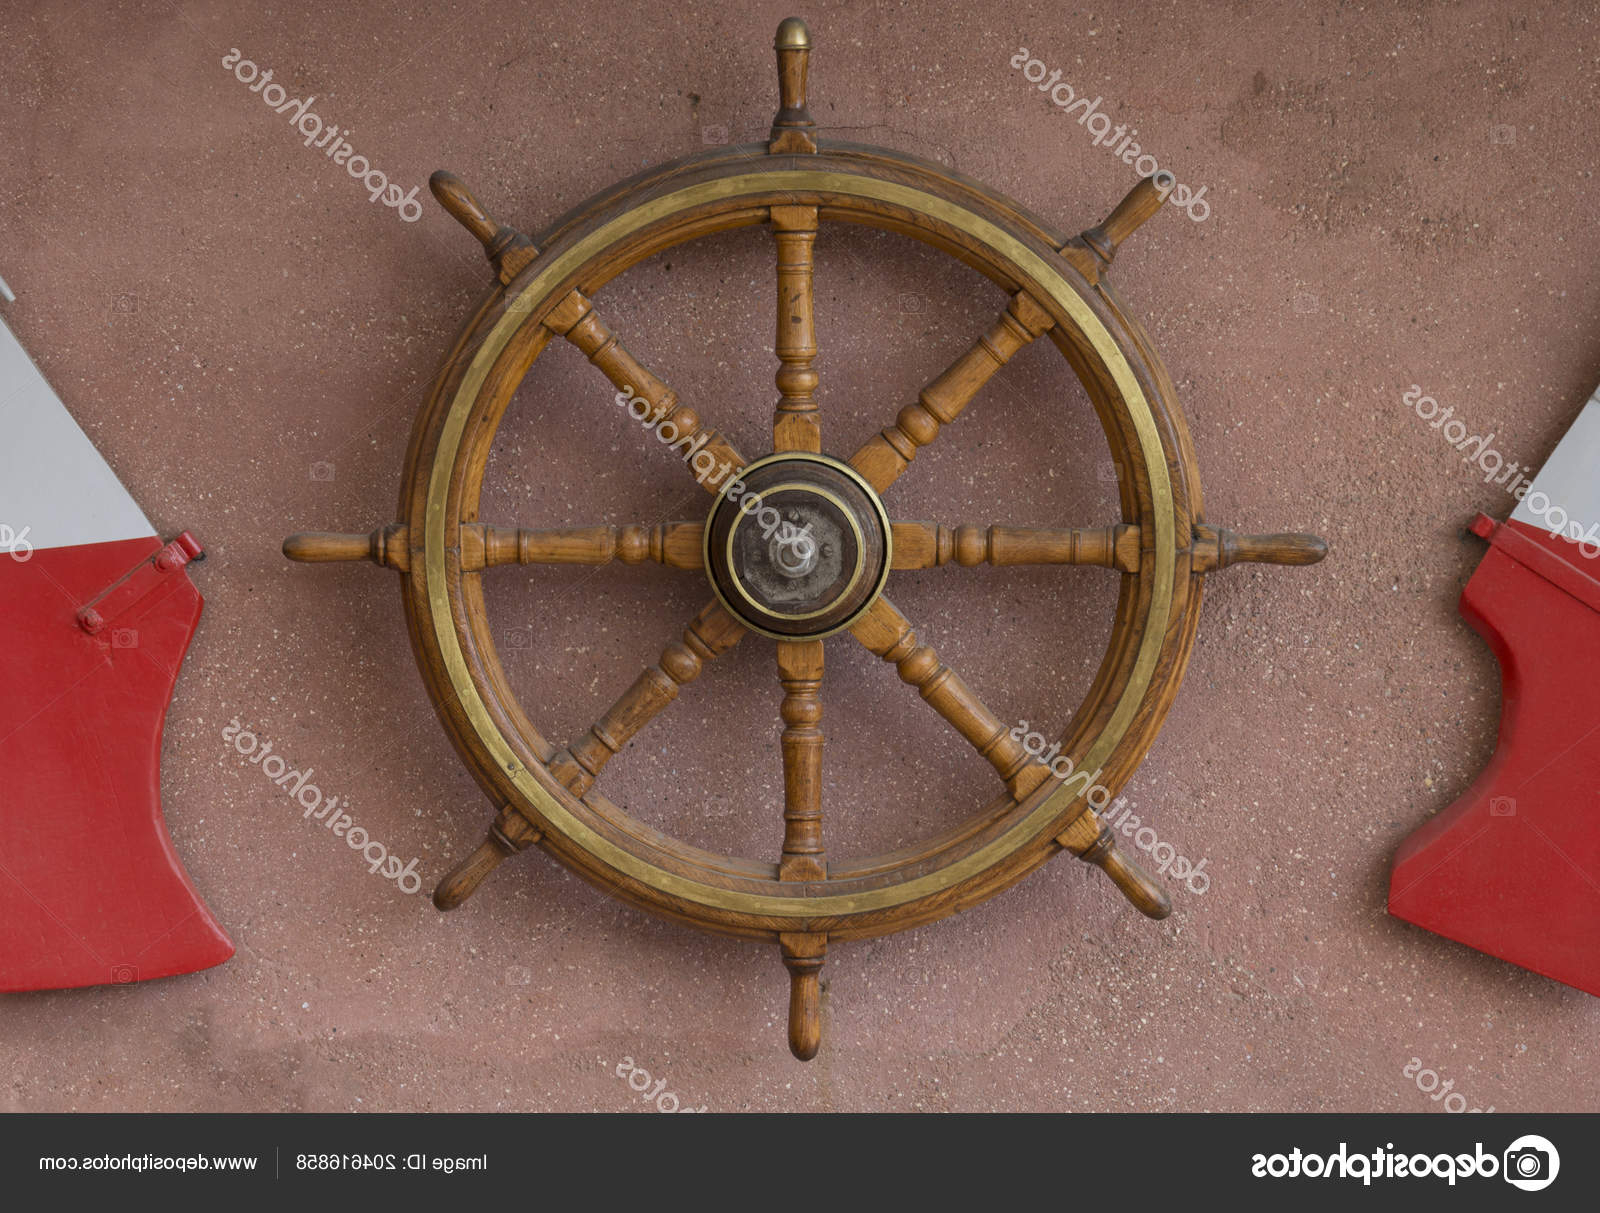 Well Known Brown/brass Wood Ship Wheel Wall Décor Intended For A Wooden Steering Wheel From A Sea Ship Hanging On A Wall (View 20 of 20)